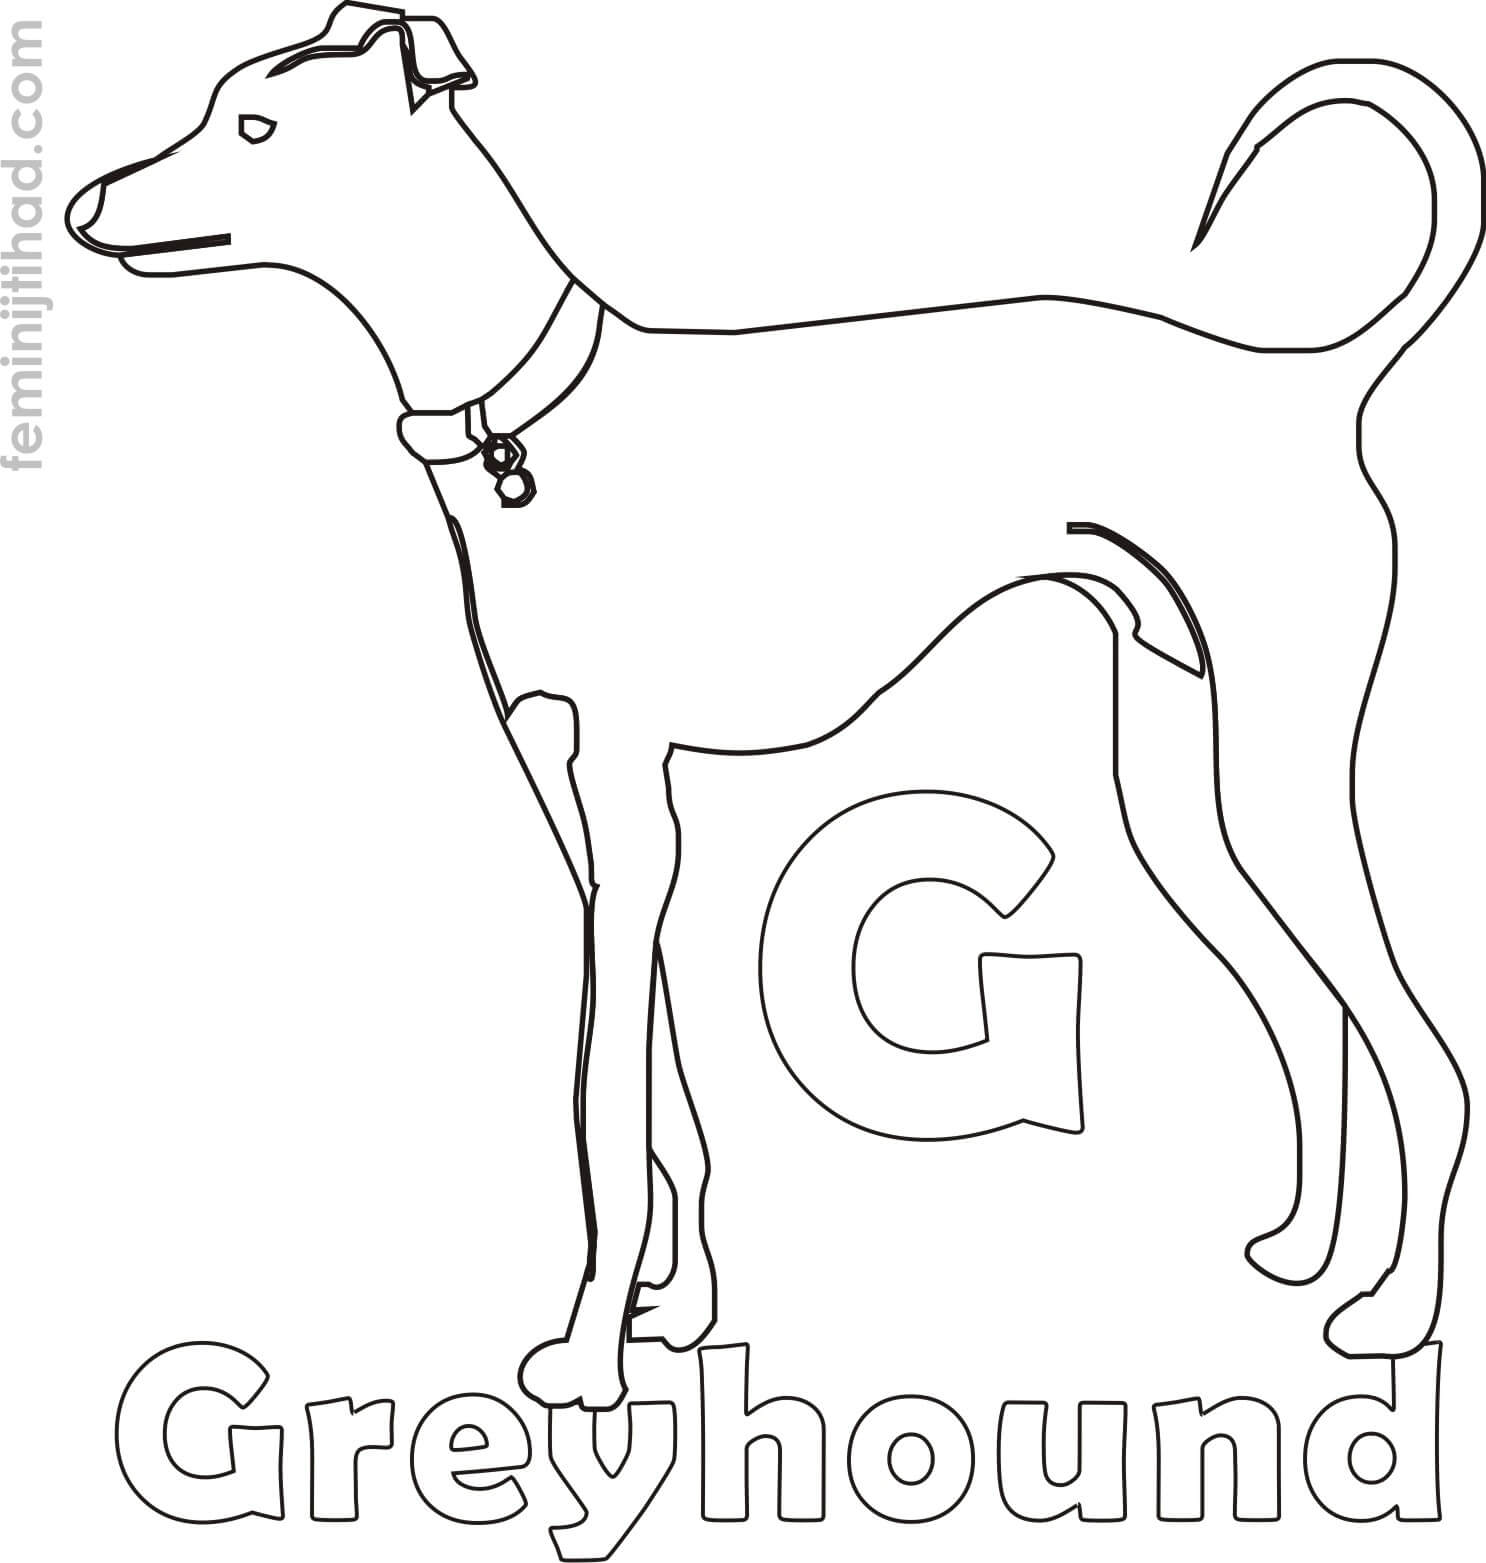 1486x1563 Greyhound Coloring Pages Coloring Pages For Kids